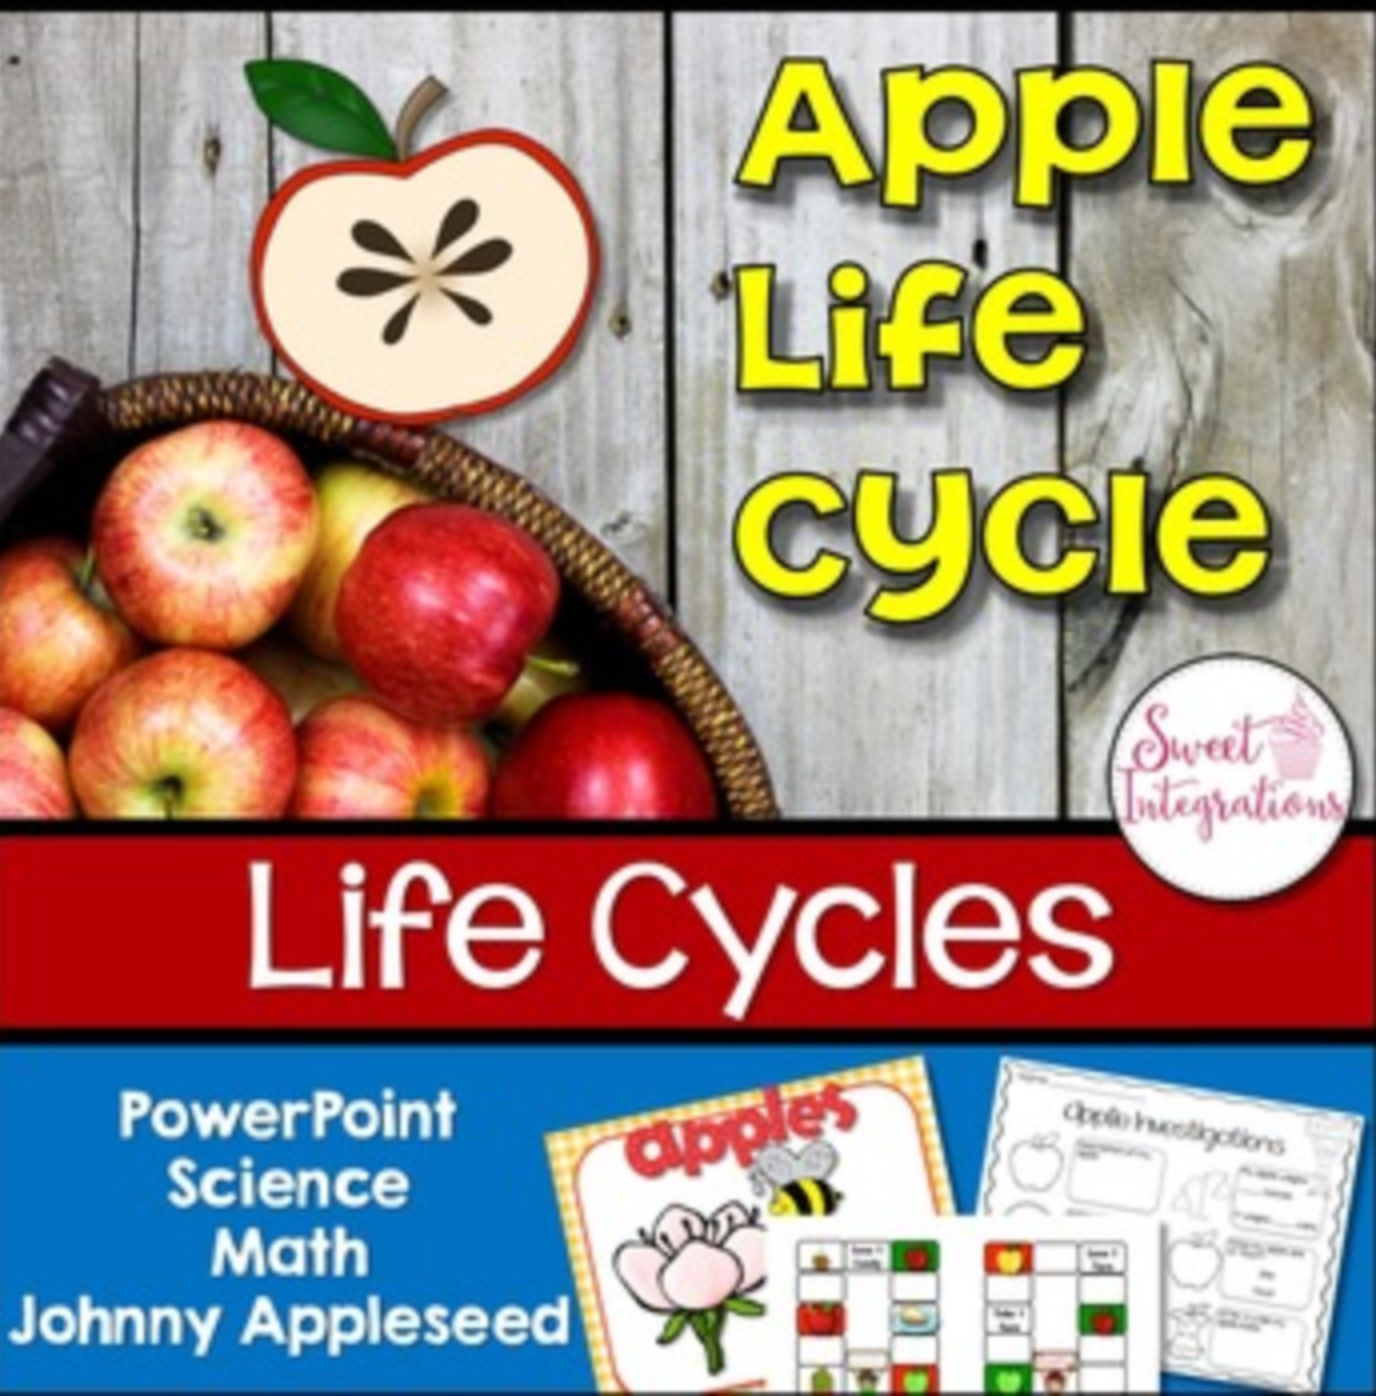 Apples Life Cycle - PowerPoint and Activities